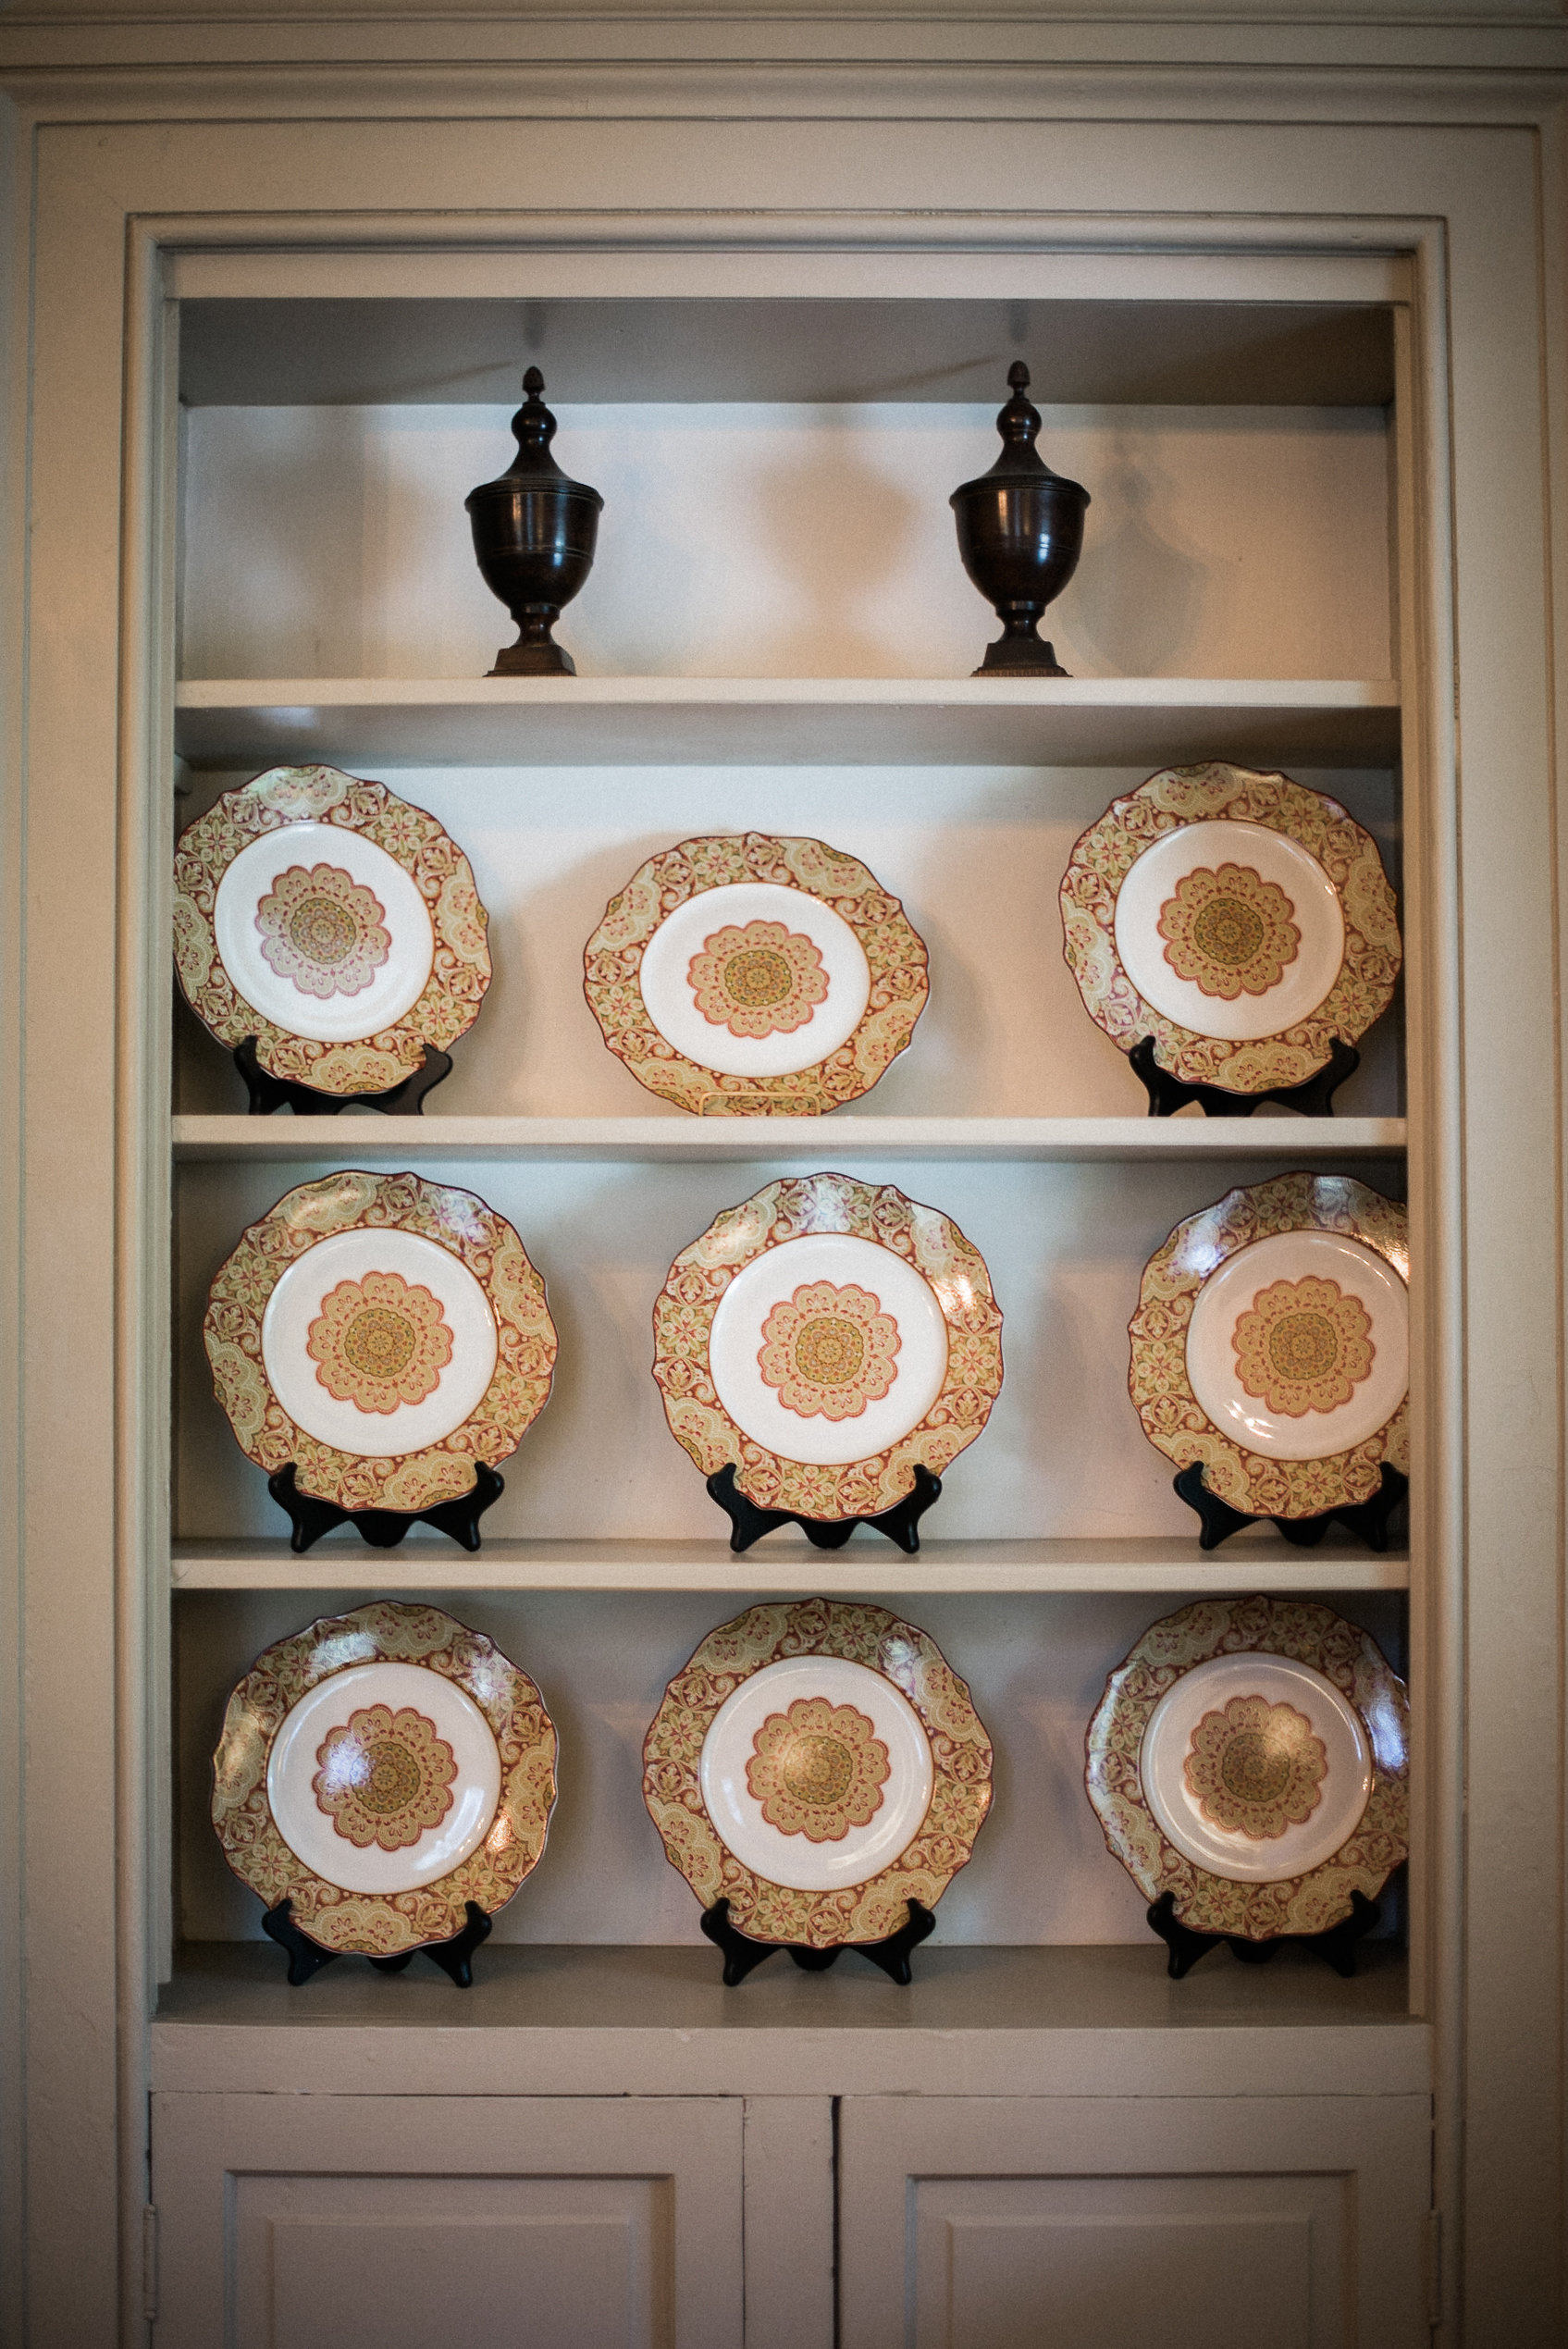 Vintage plates on display